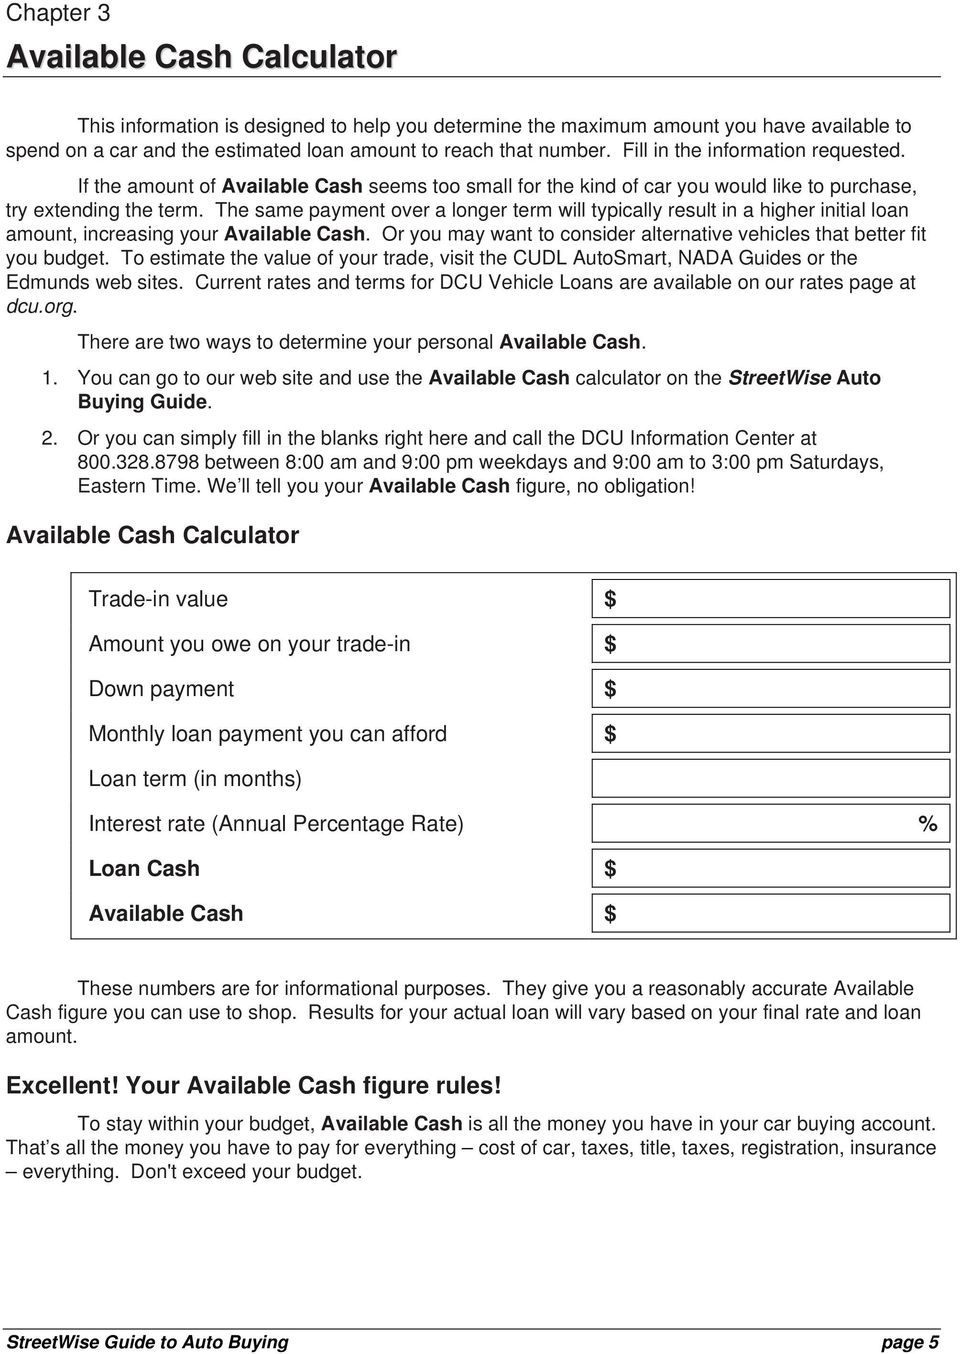 Dcu Auto Loan Calculator >> Okay Let S Get Started Pdf Free Download